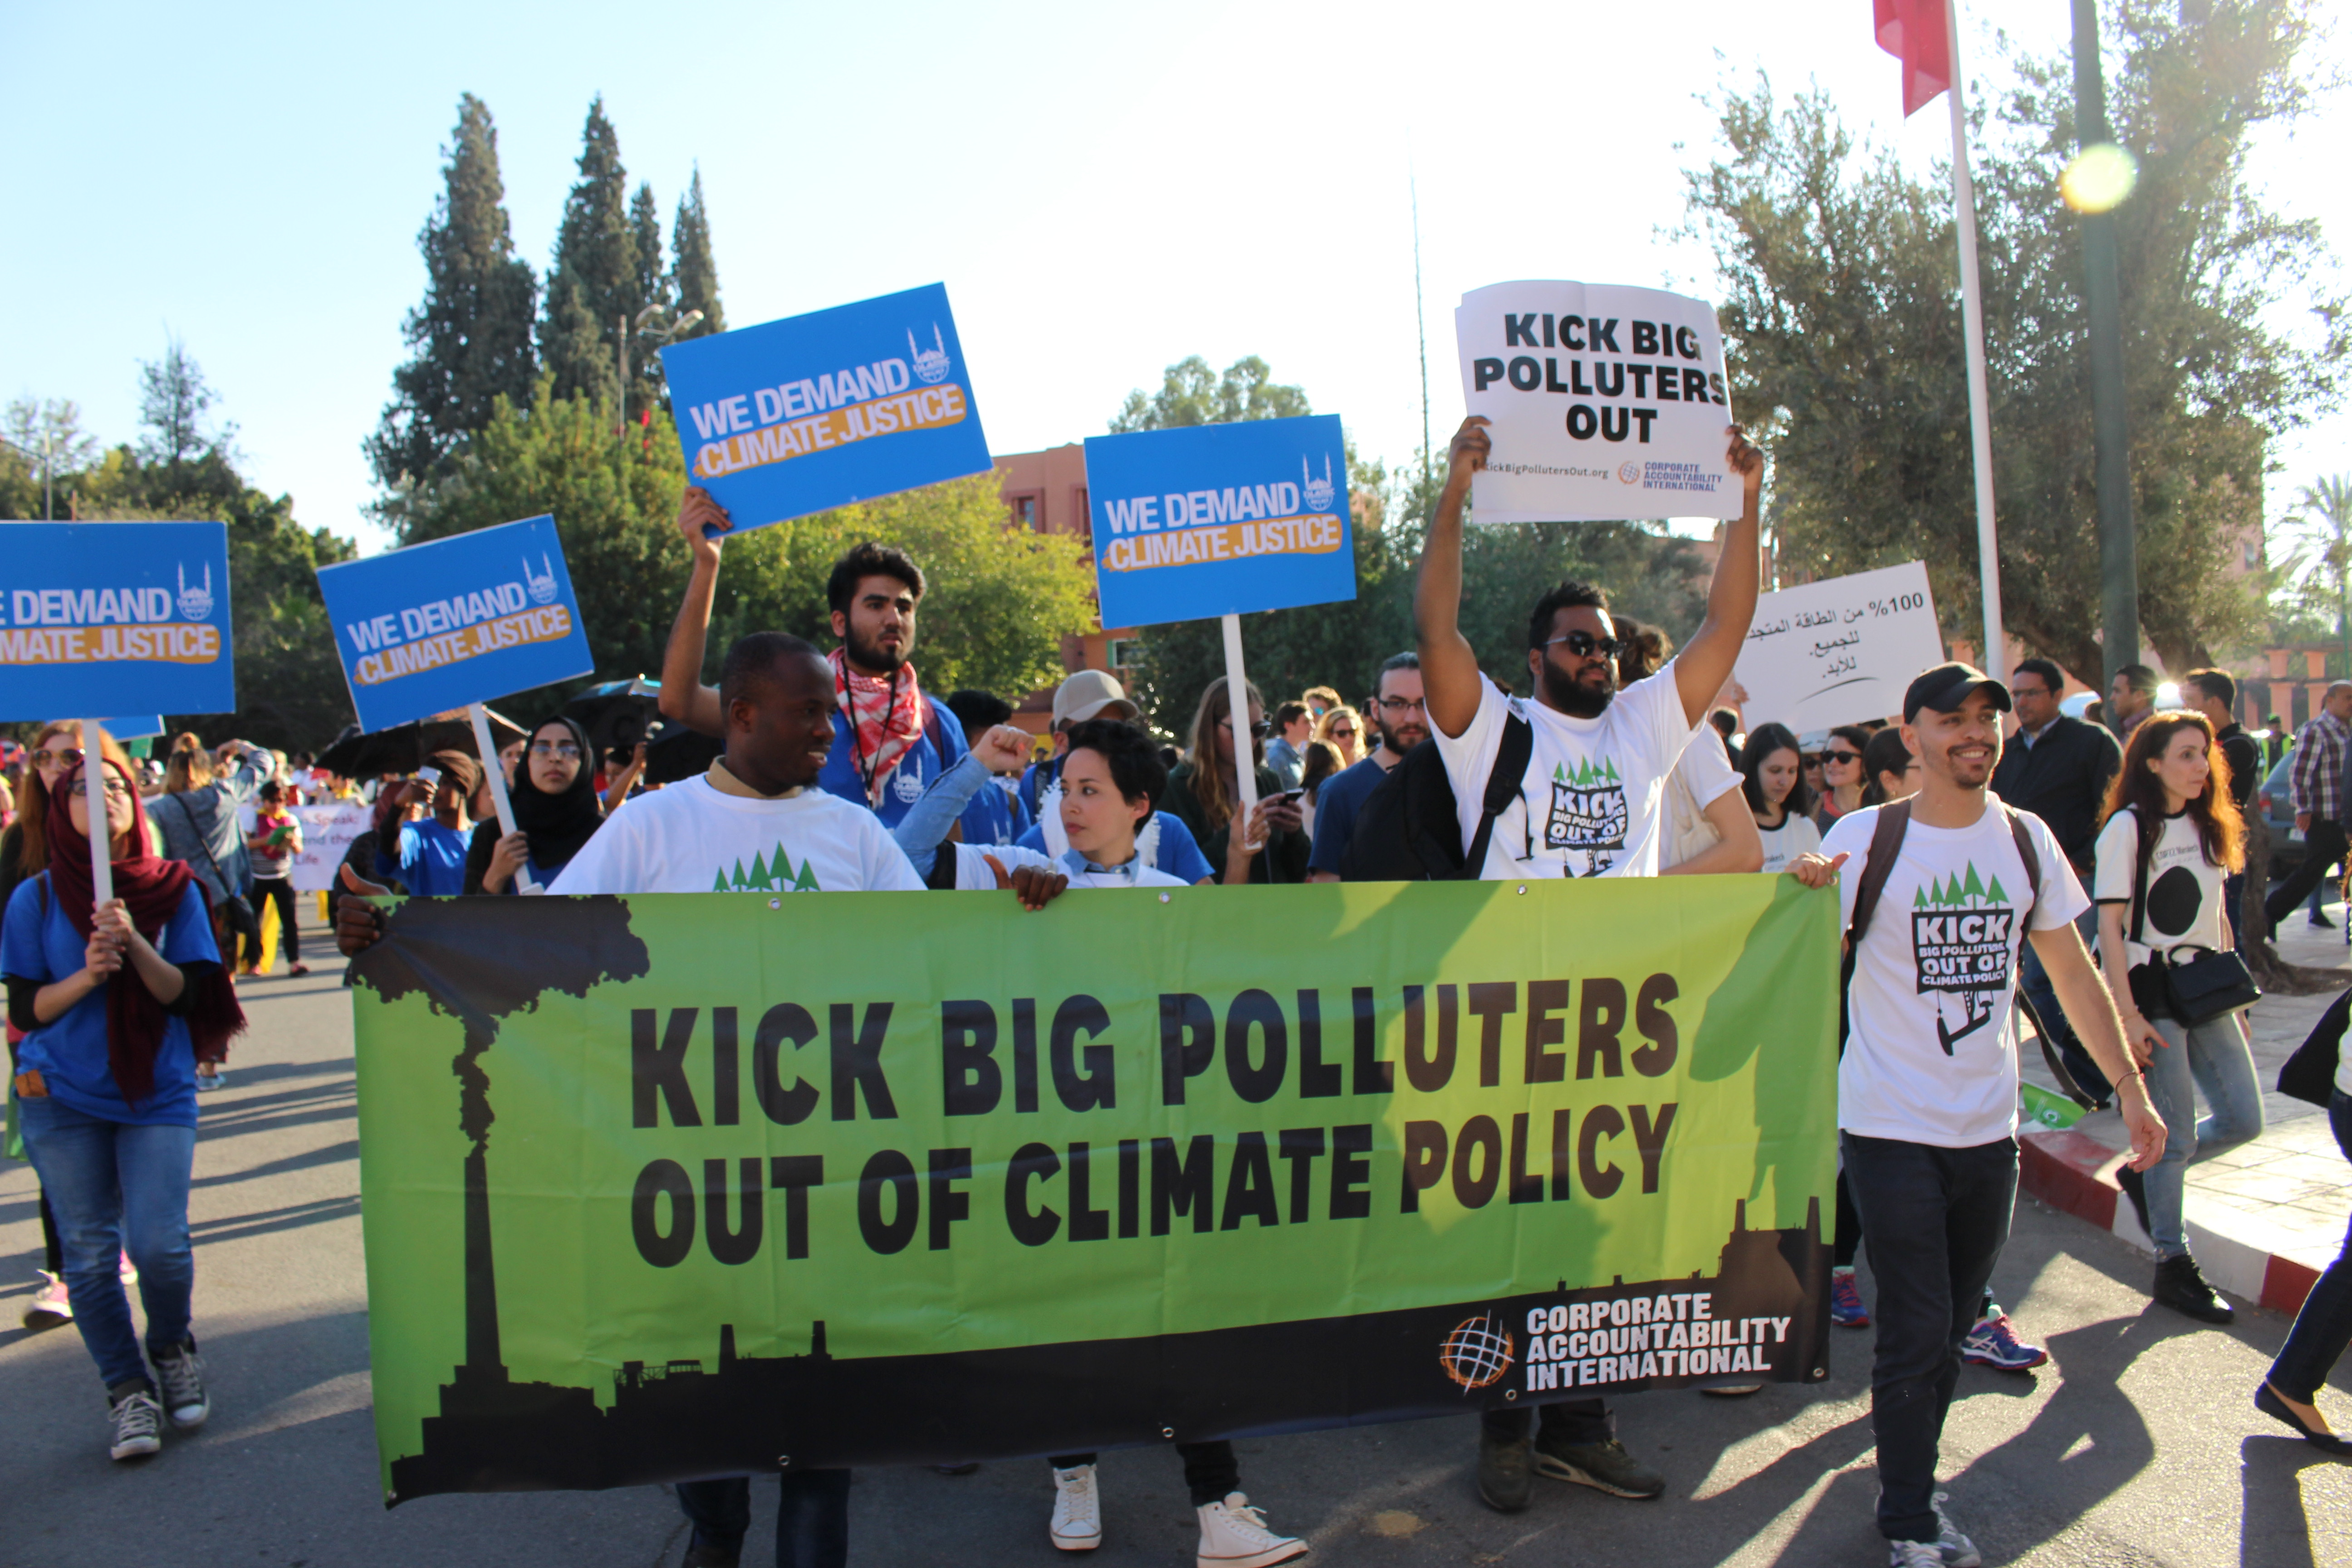 Our team— pictured here at the 2016 U.N. climate talks in Marrakech, Morocco— dares to demand just climate policy free of Big Polluters' influence.